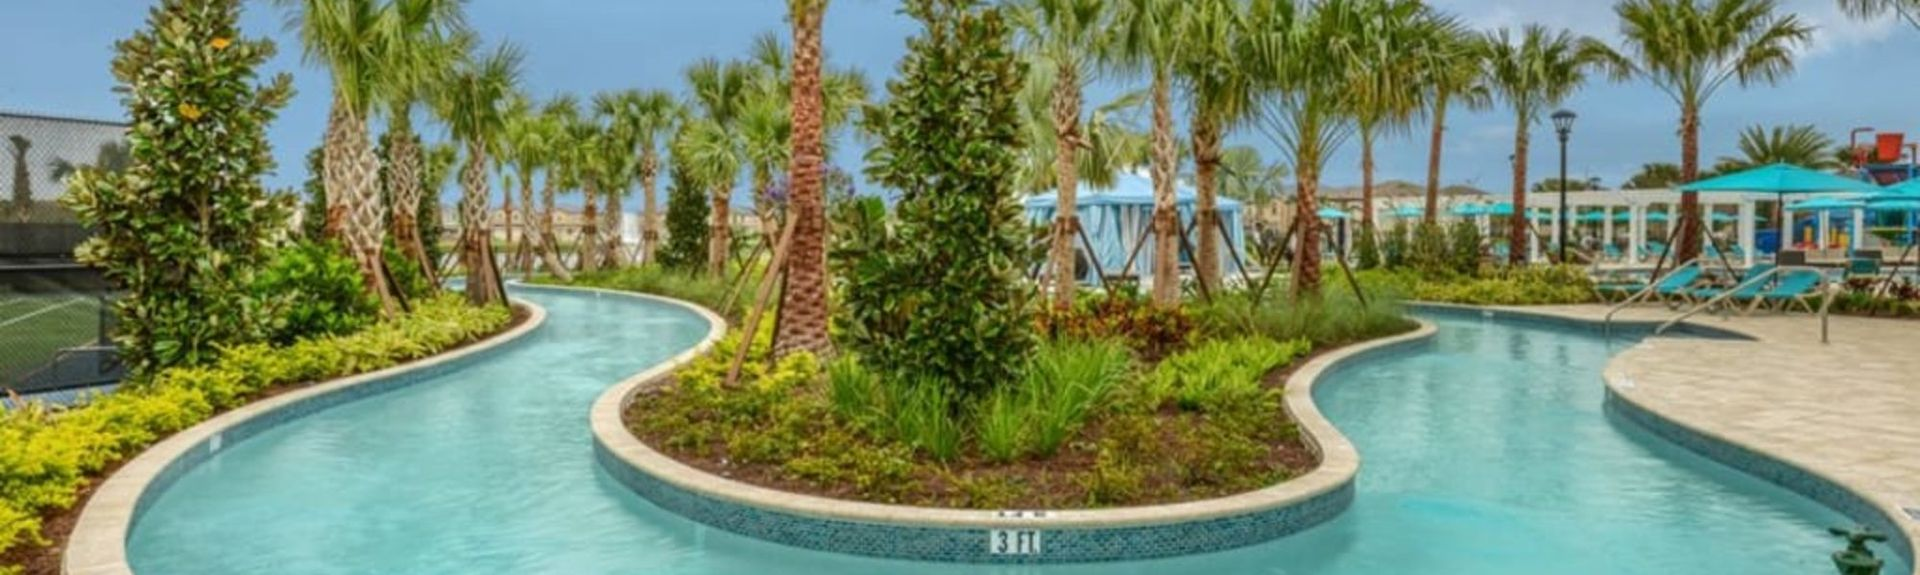 Hilton Grand Vacations at SeaWorld, Orlando, Florida, United States of America